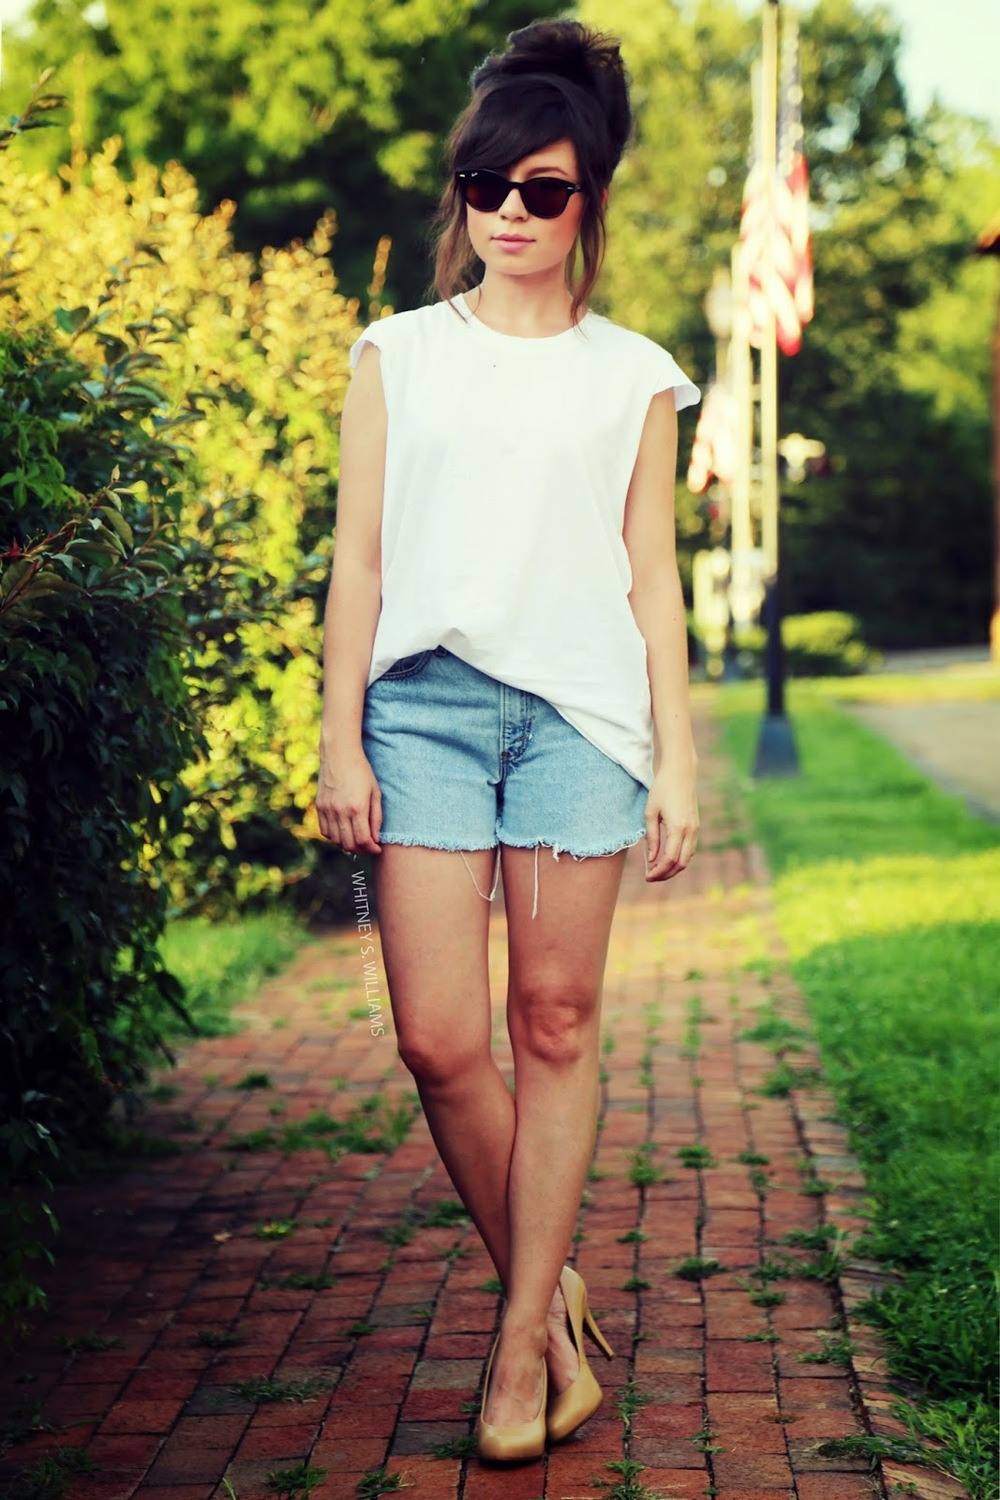 alaLadywolf_whitney+s+williams_DIY_plain+white+tee_main3.jpg